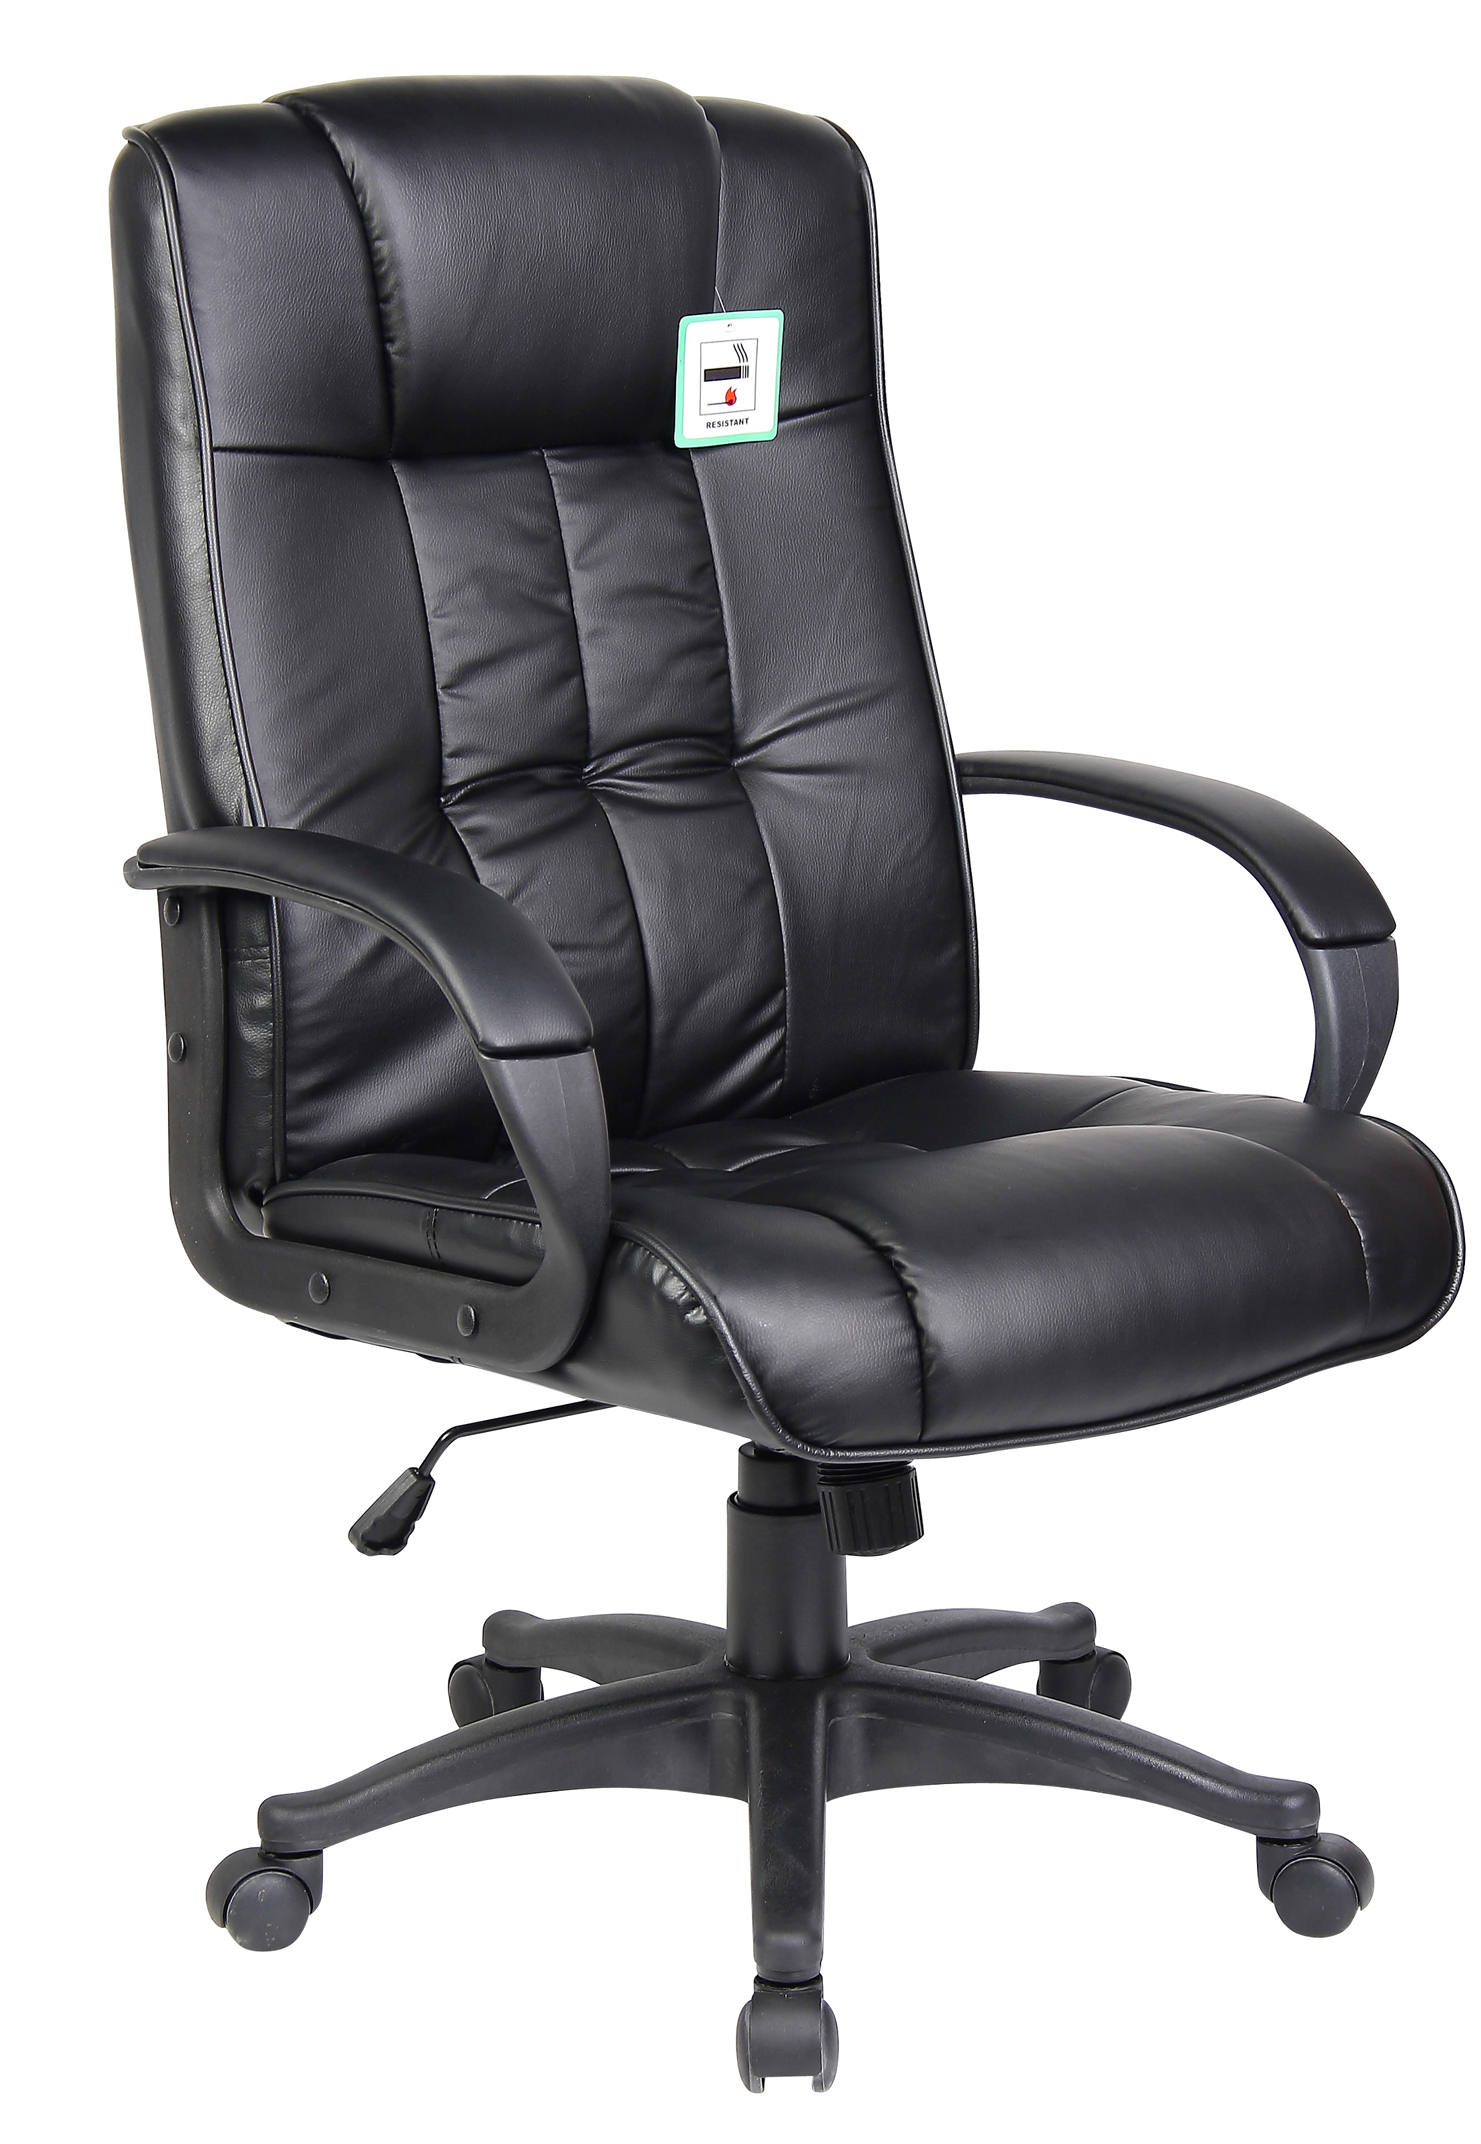 Leather Office Chairs Quality Swivel Pu Leather Executive Office Furnitue